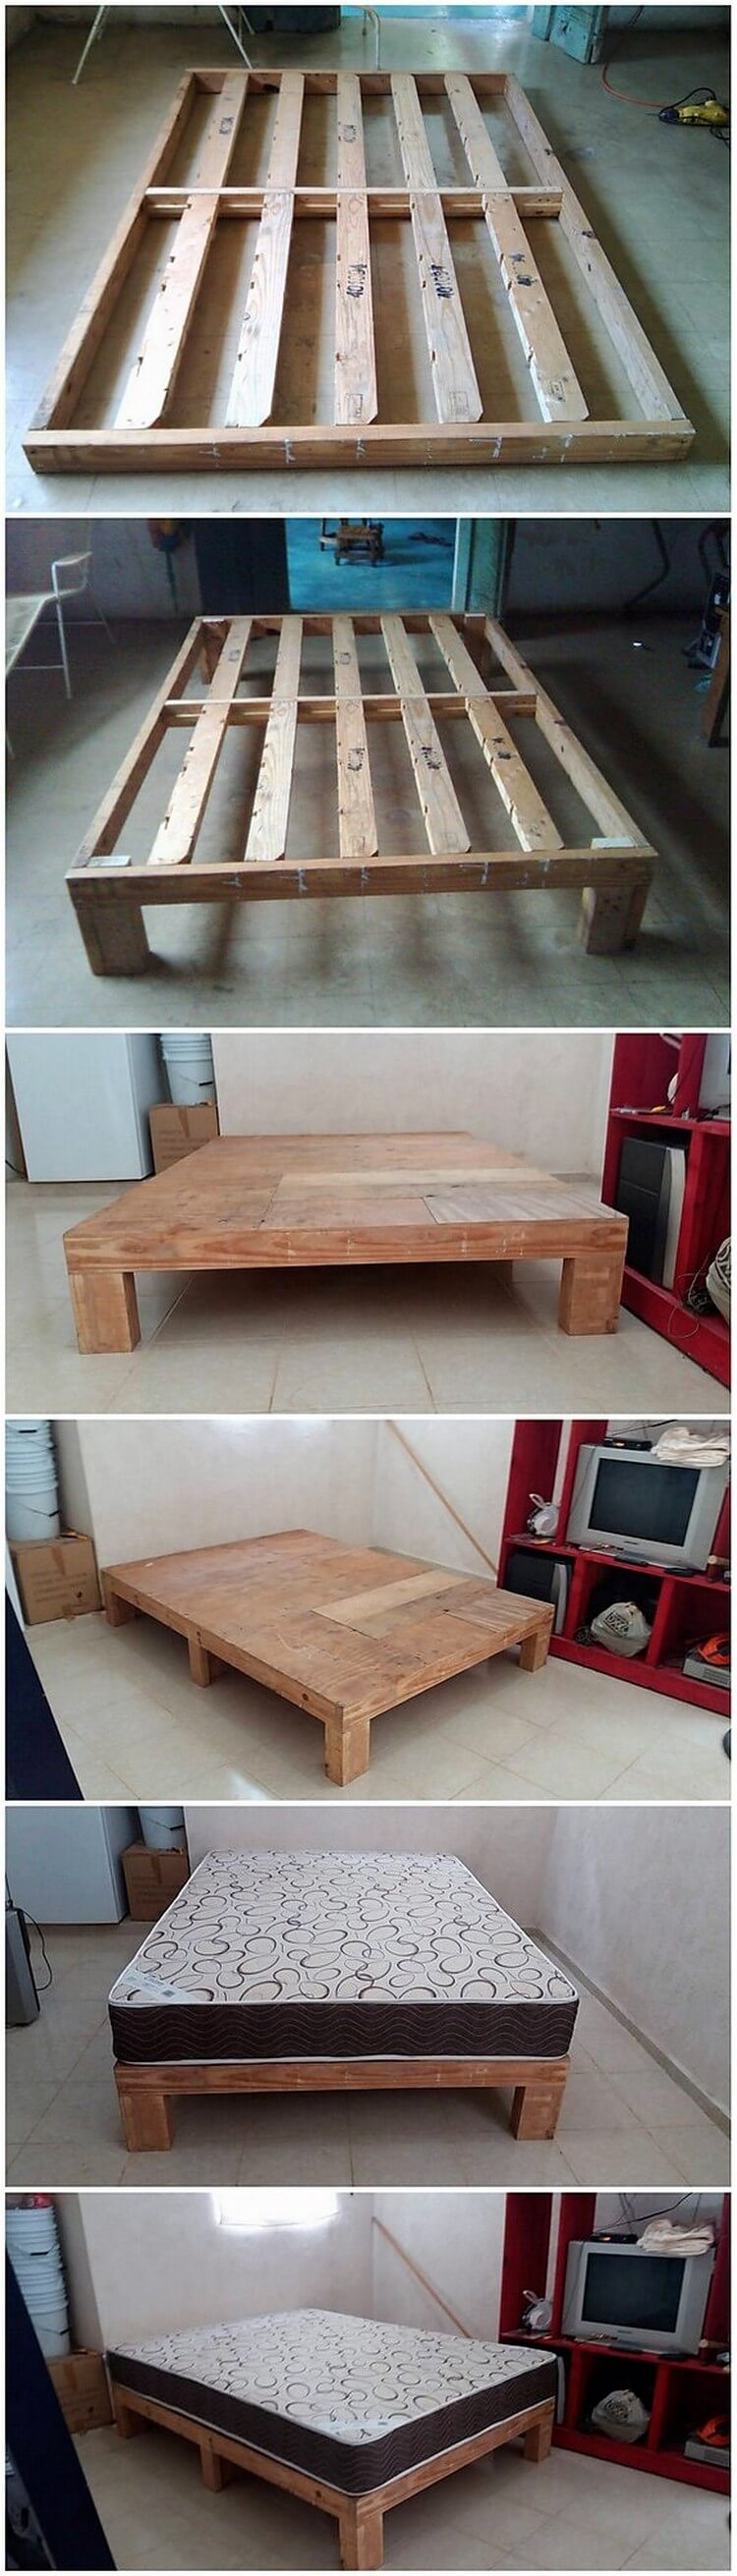 Latest and Easy DIY Wood Pallet Ideas You'll Love to Make ...